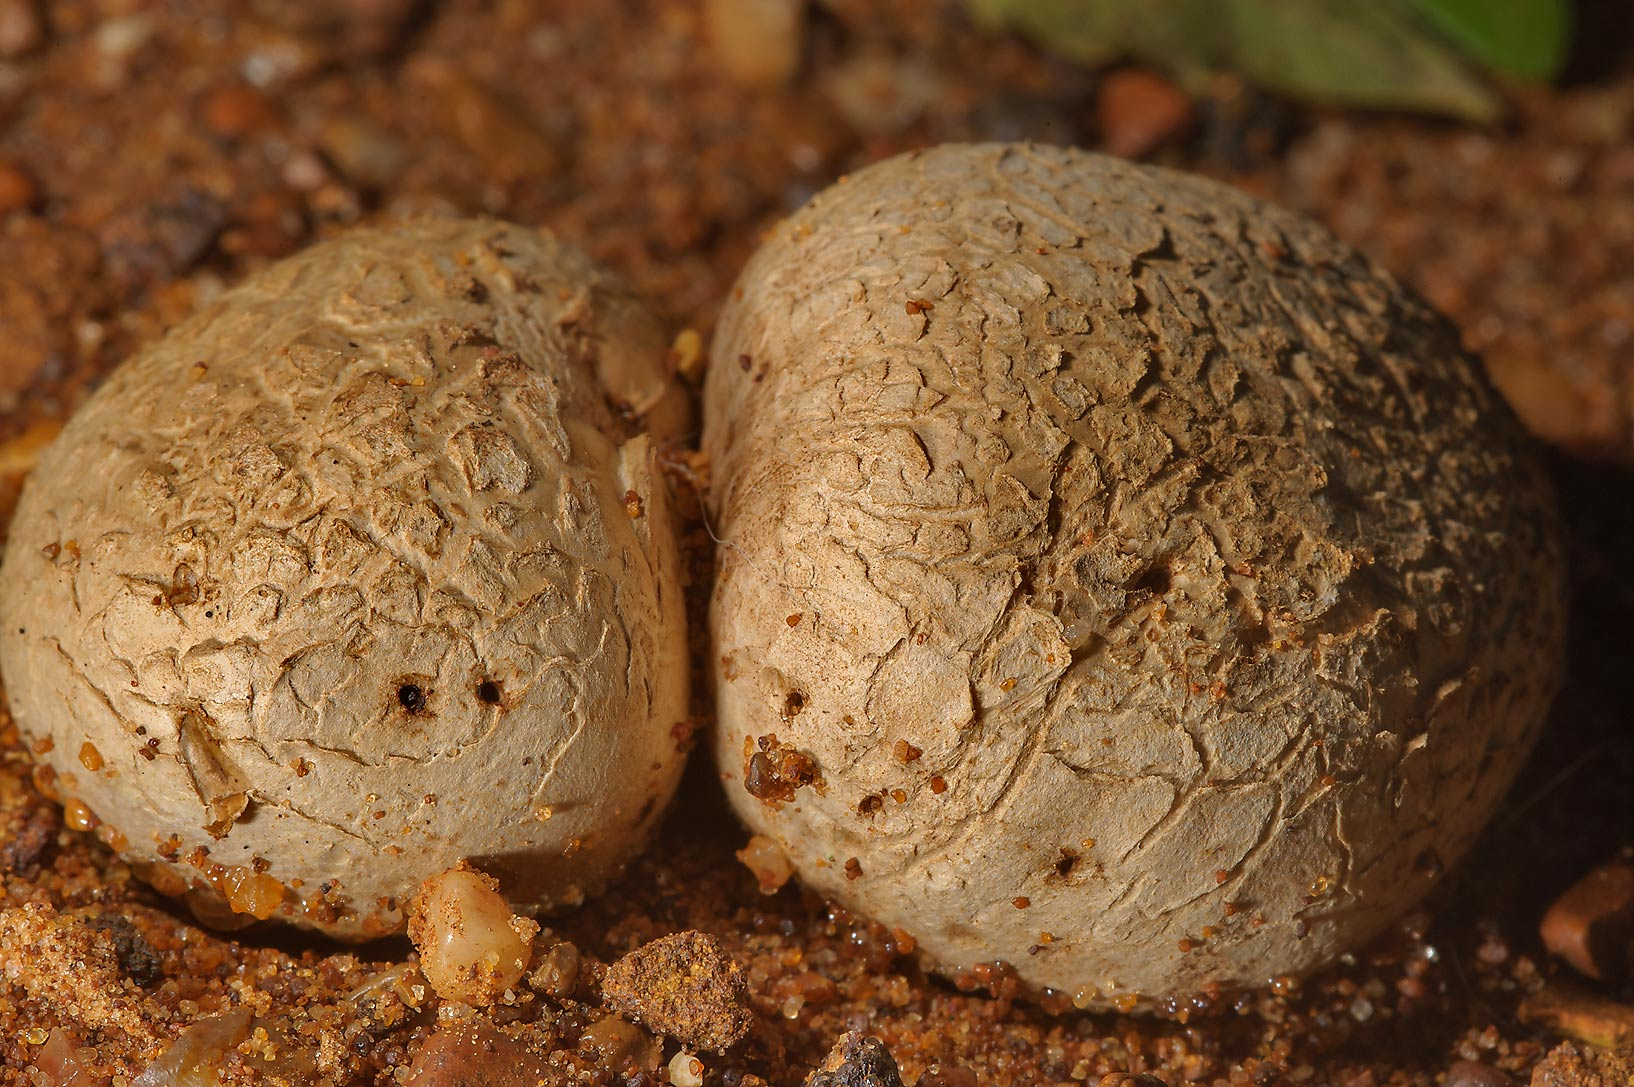 Tuff puffball mushrooms (dirty tennis ball fungi...Creek Park. College Station, Texas